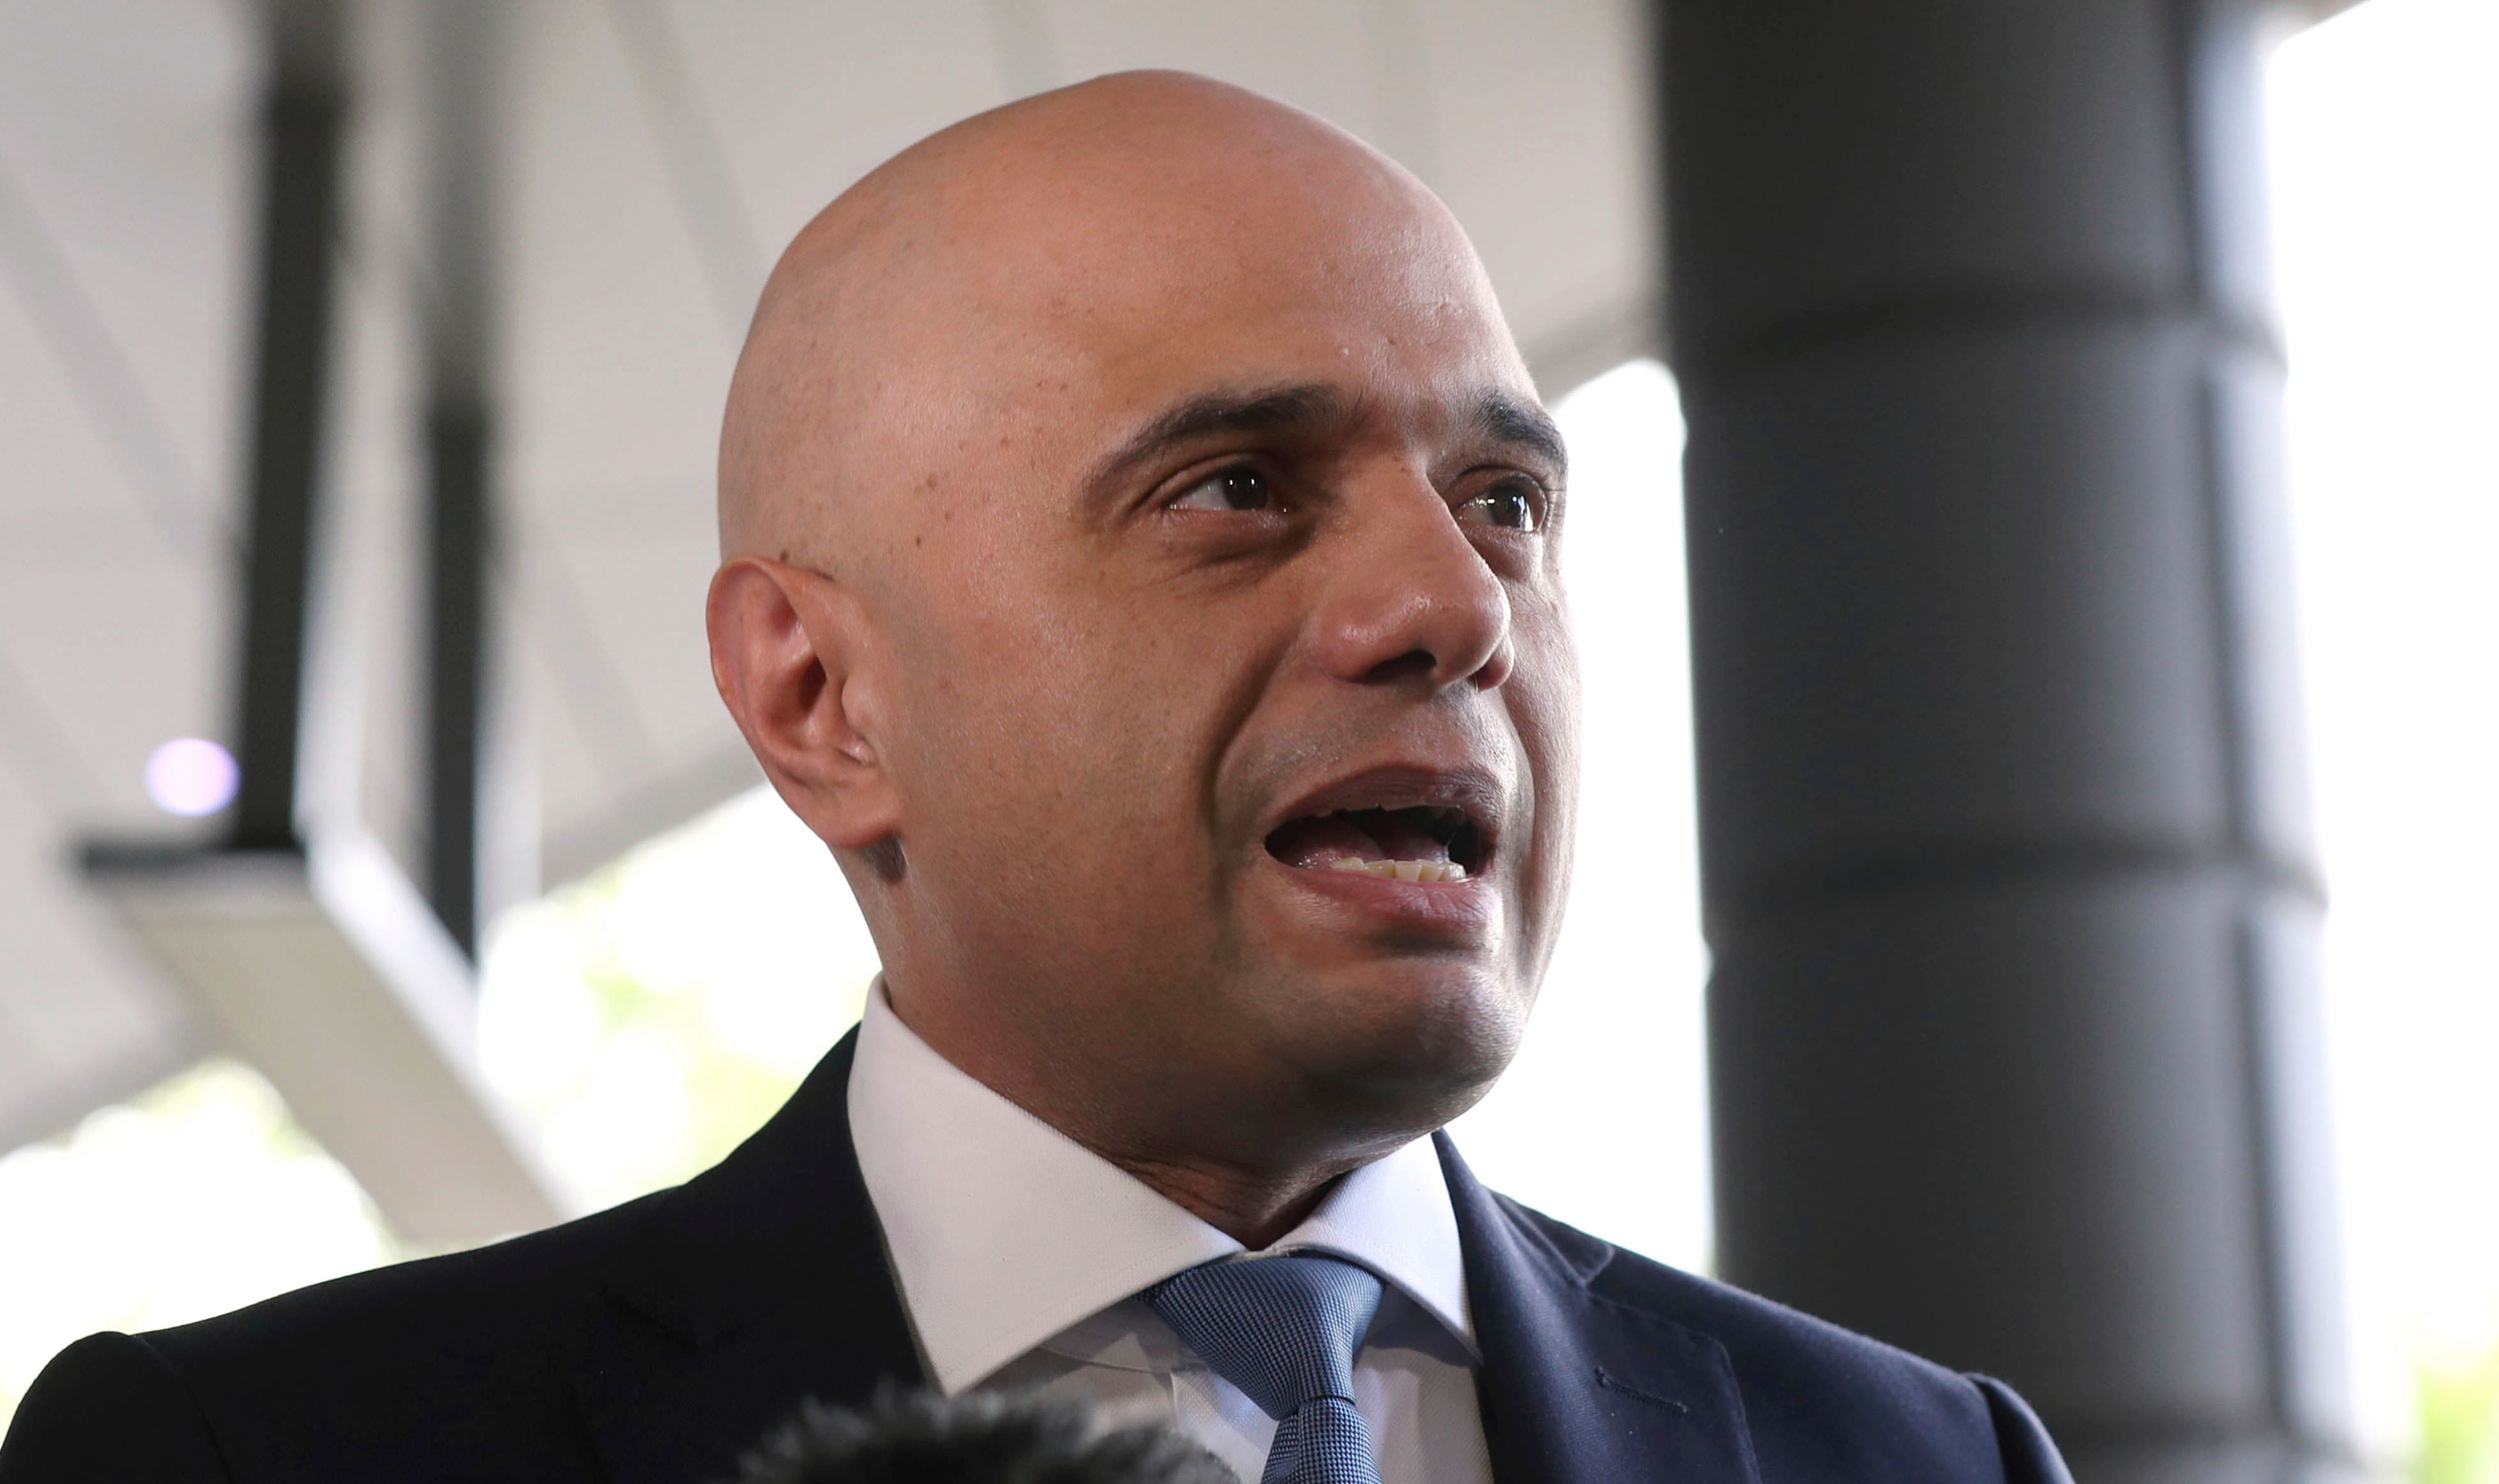 Sajid Javid arrives for the Conservative National Convention meeting in central London on June 15, 2019.